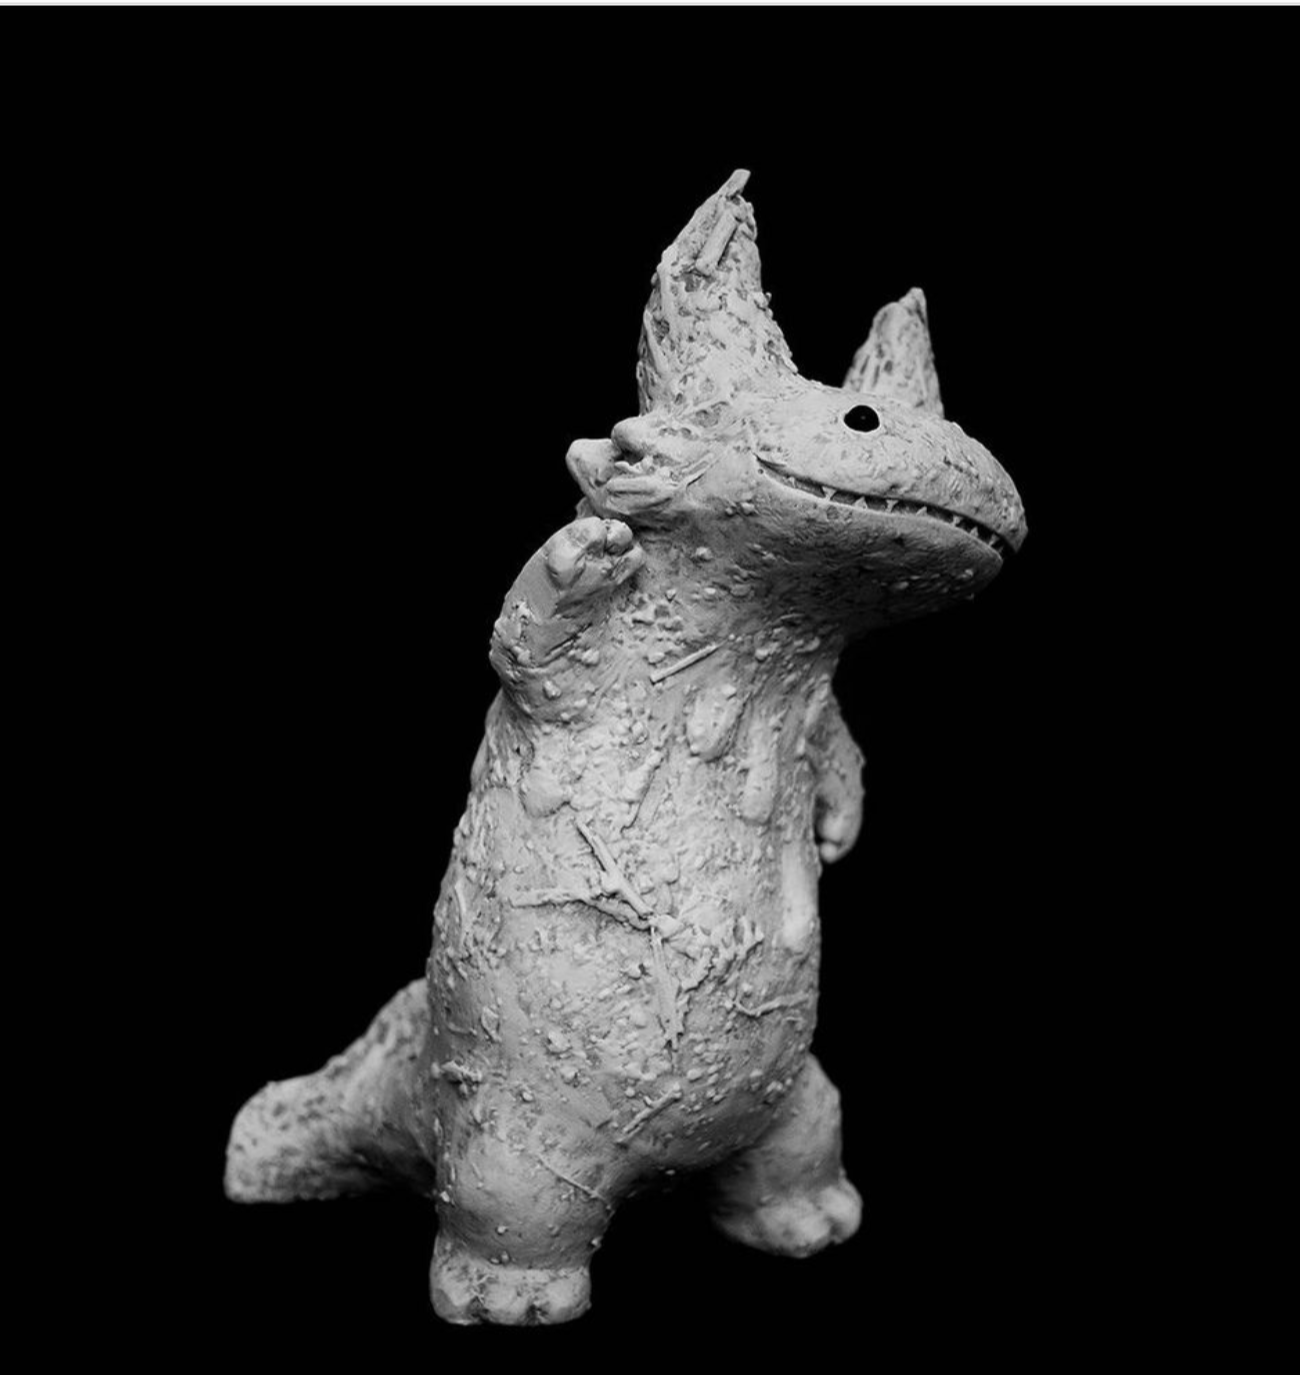 Kaiju Byron Native variant by Shoko Nakazawa being released at Cute Aggression solo exhibition with the Little Hut 3